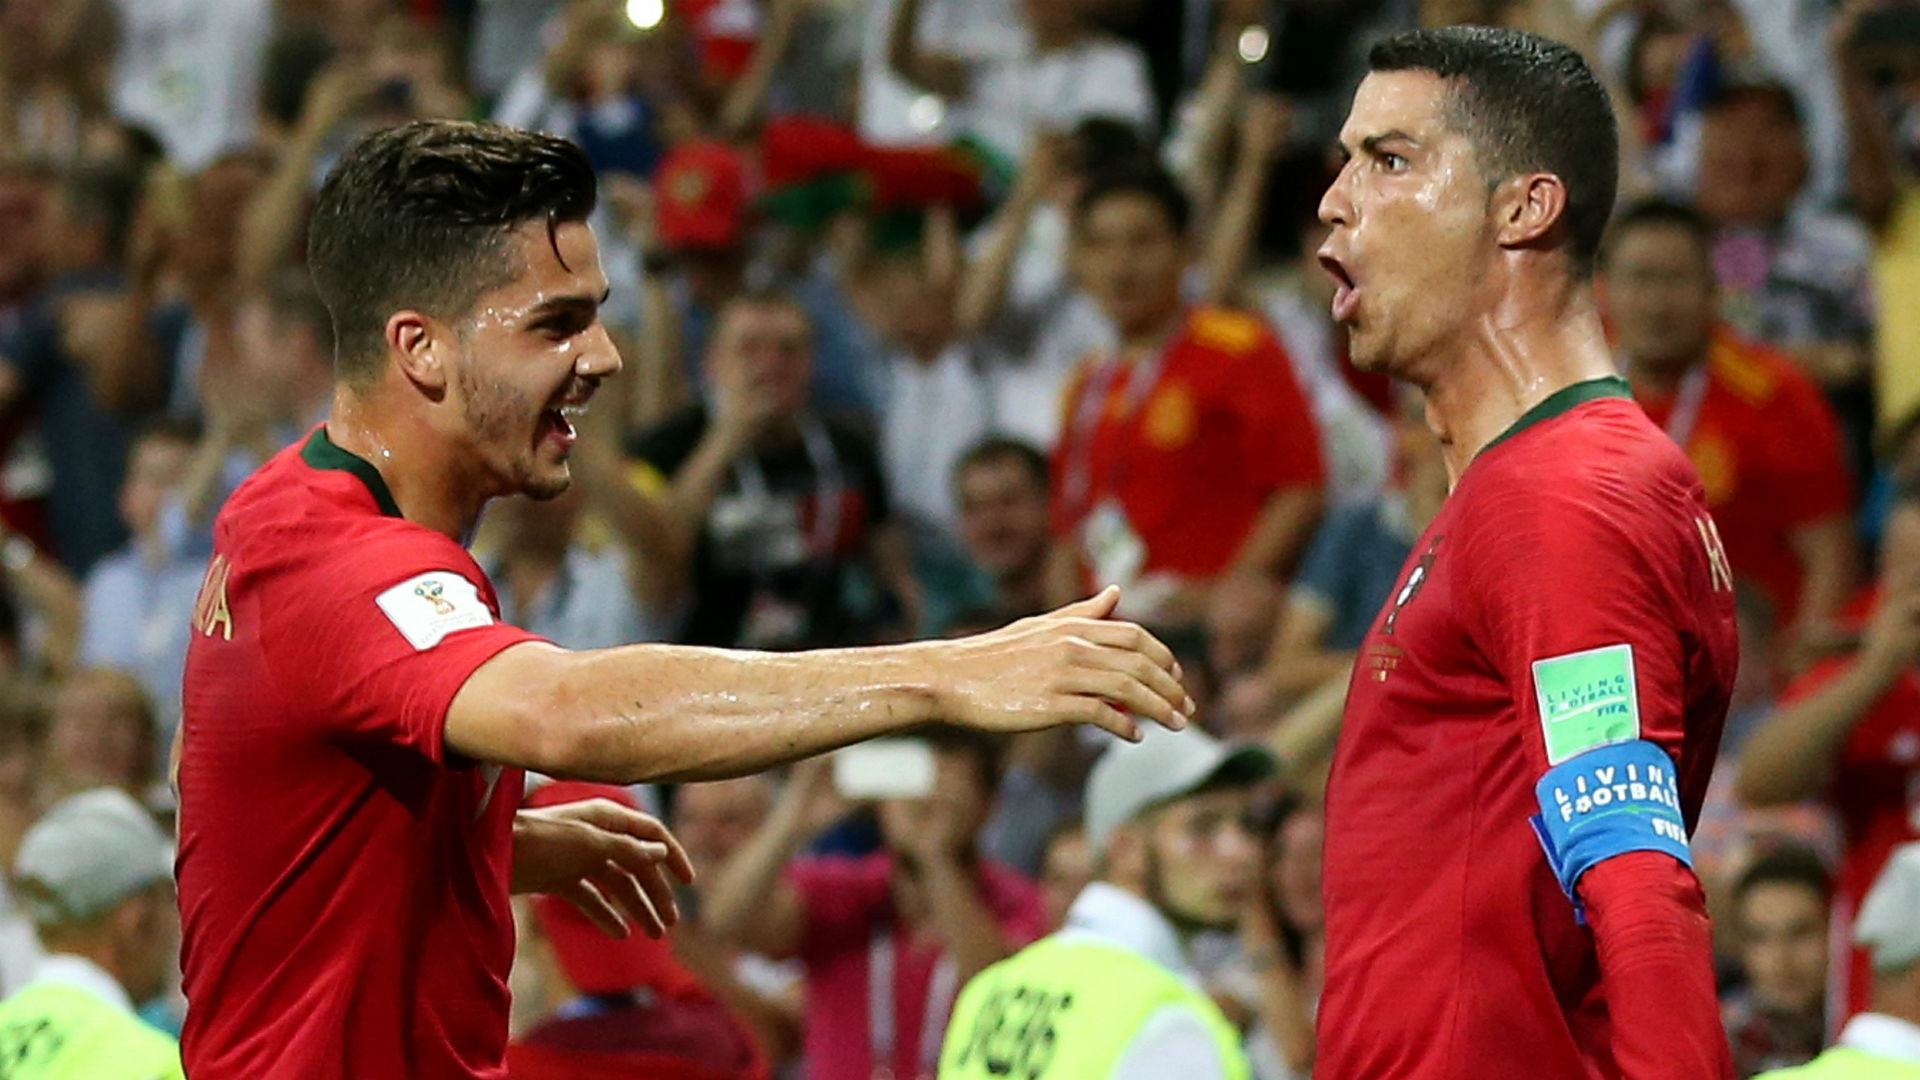 Cristiano Ronaldo surpasses Ferenc Puskas as Portugal surge on in Russian Federation